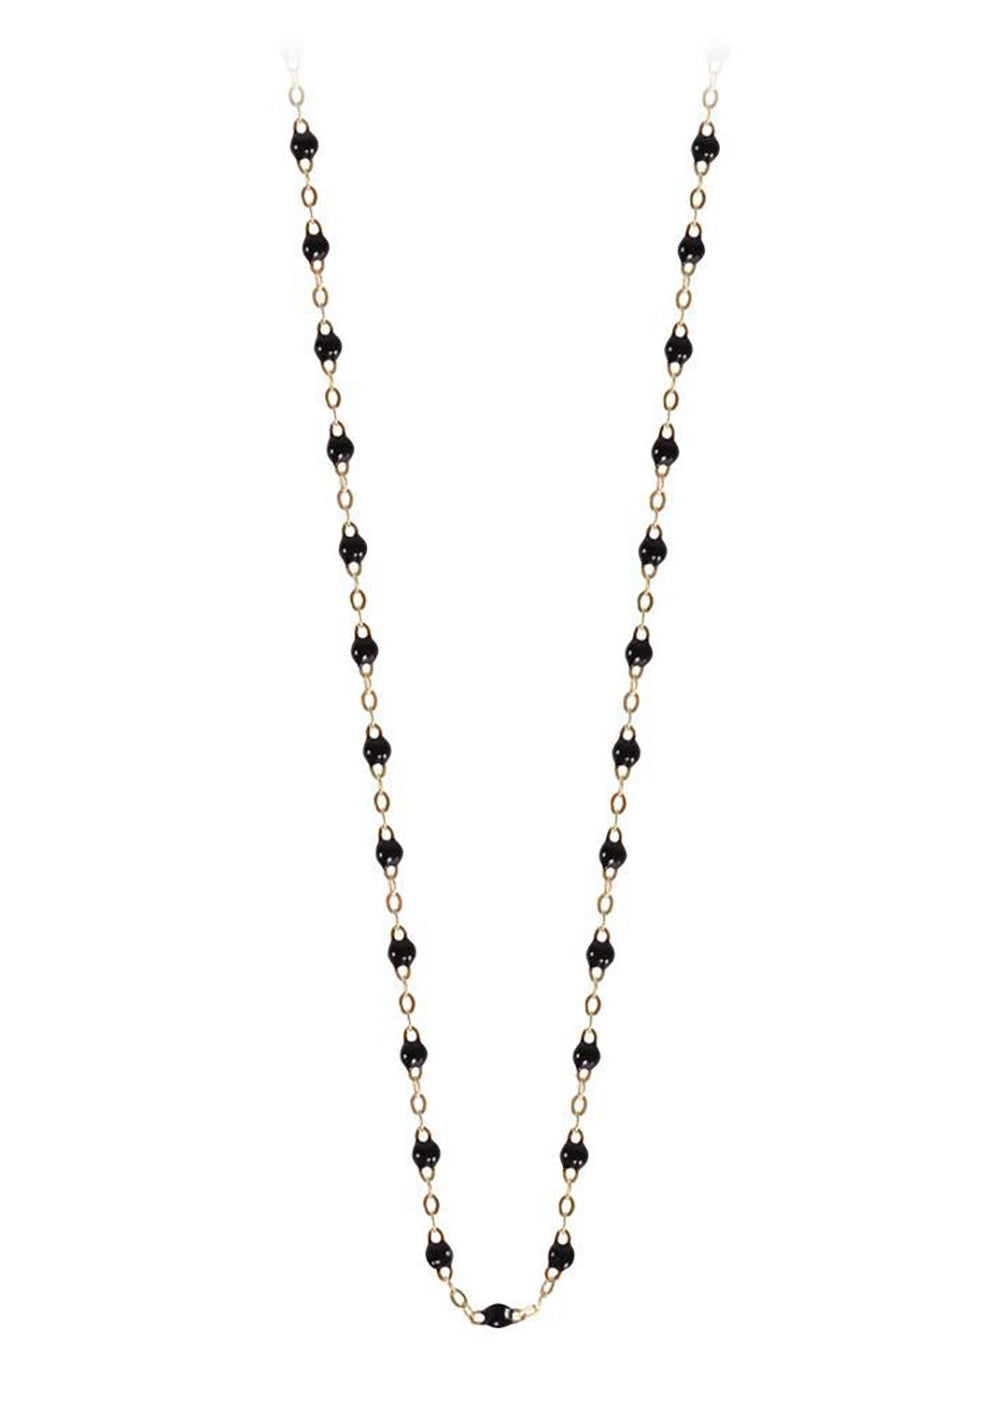 gigiCLOZEAU -classic gigi necklace black |18k gold|